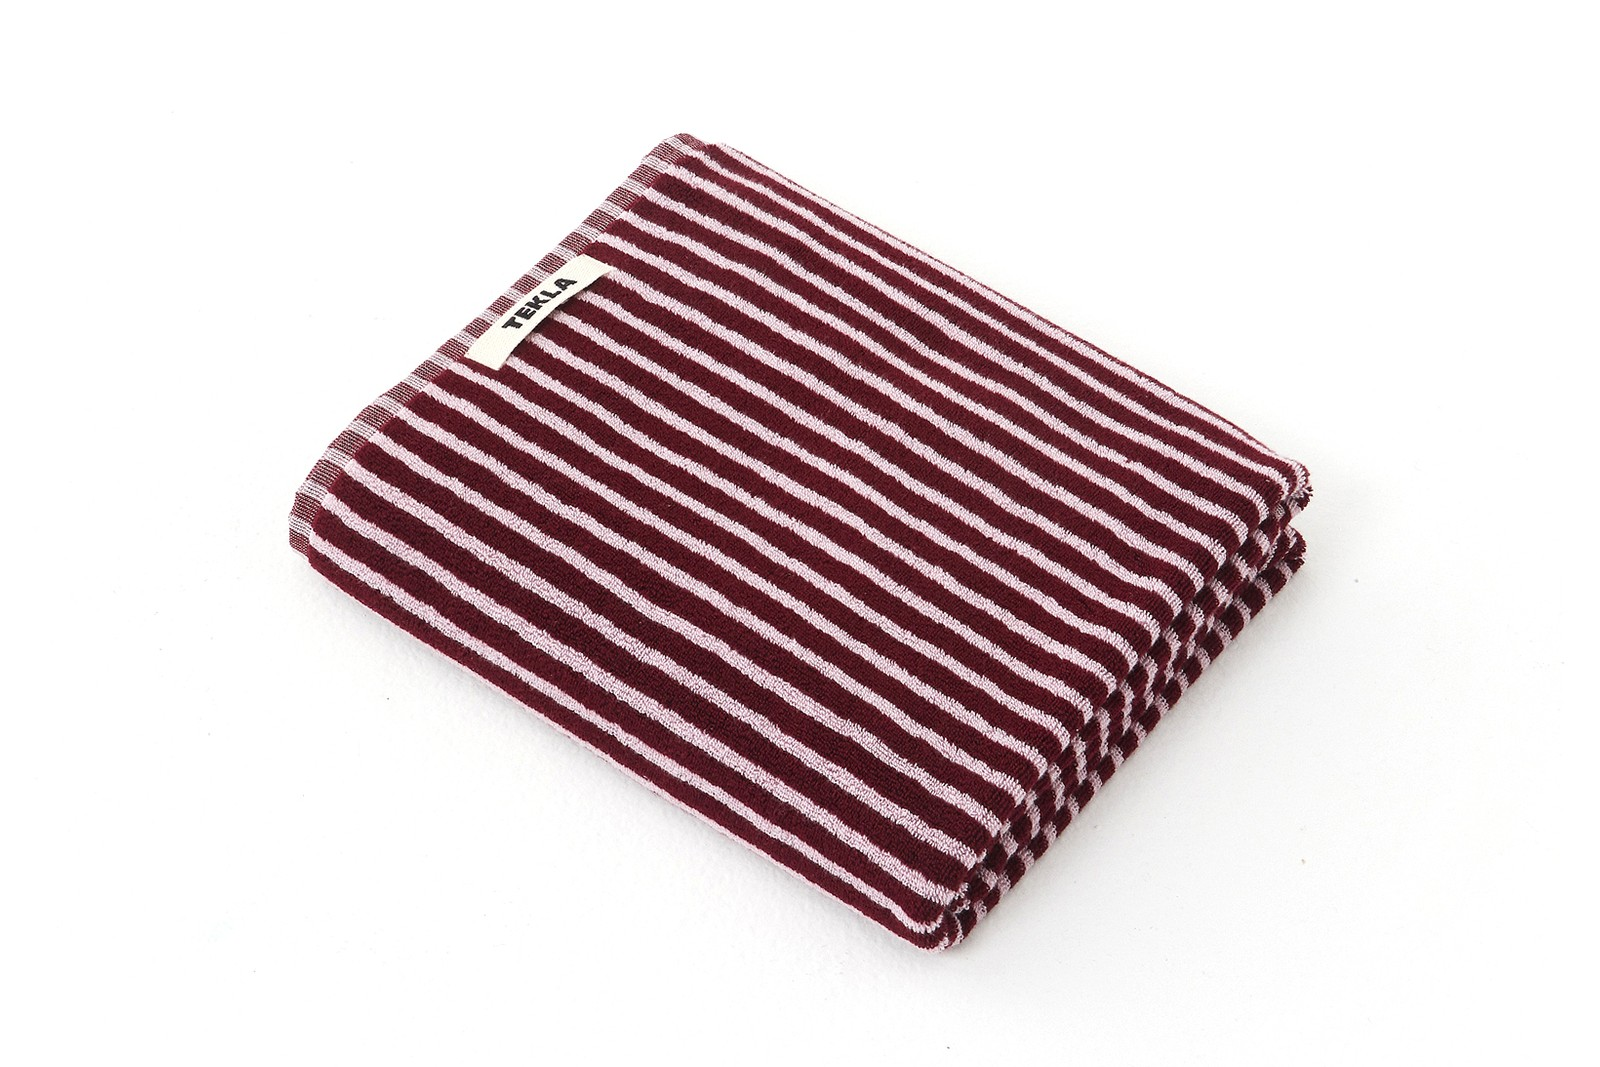 Tekla Striped Organic Cotton Towels Chair Home Decor Black White Maroon